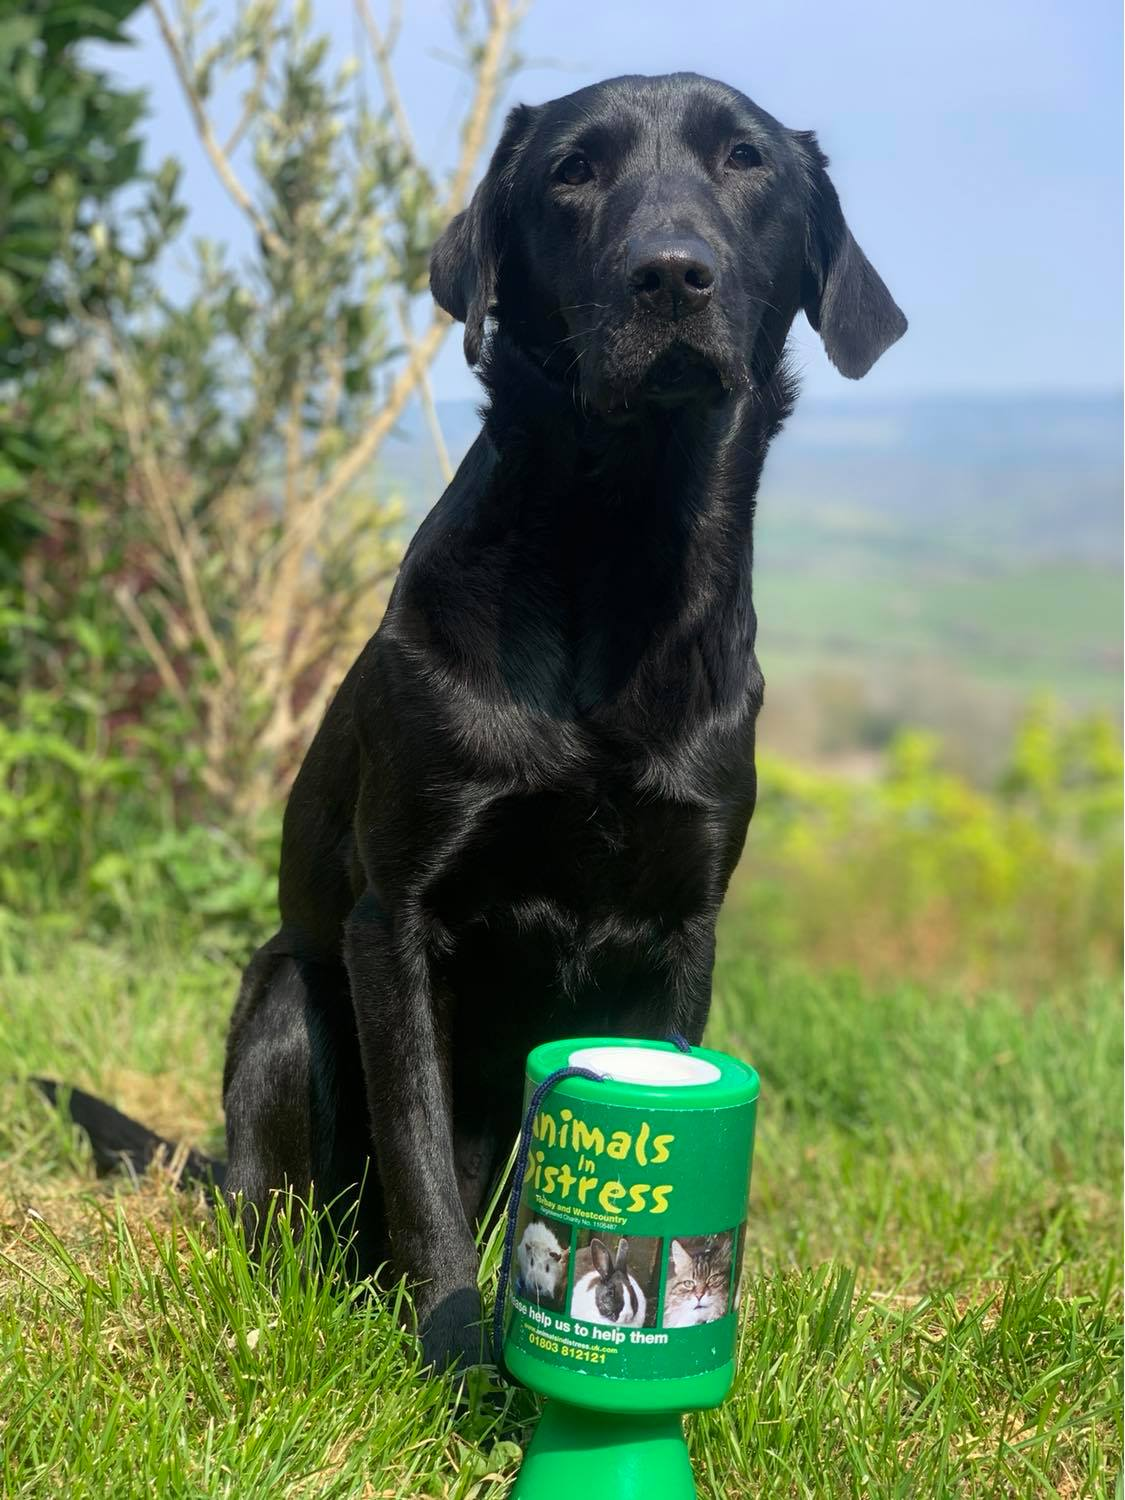 Black Labrador sat with charity collection tin